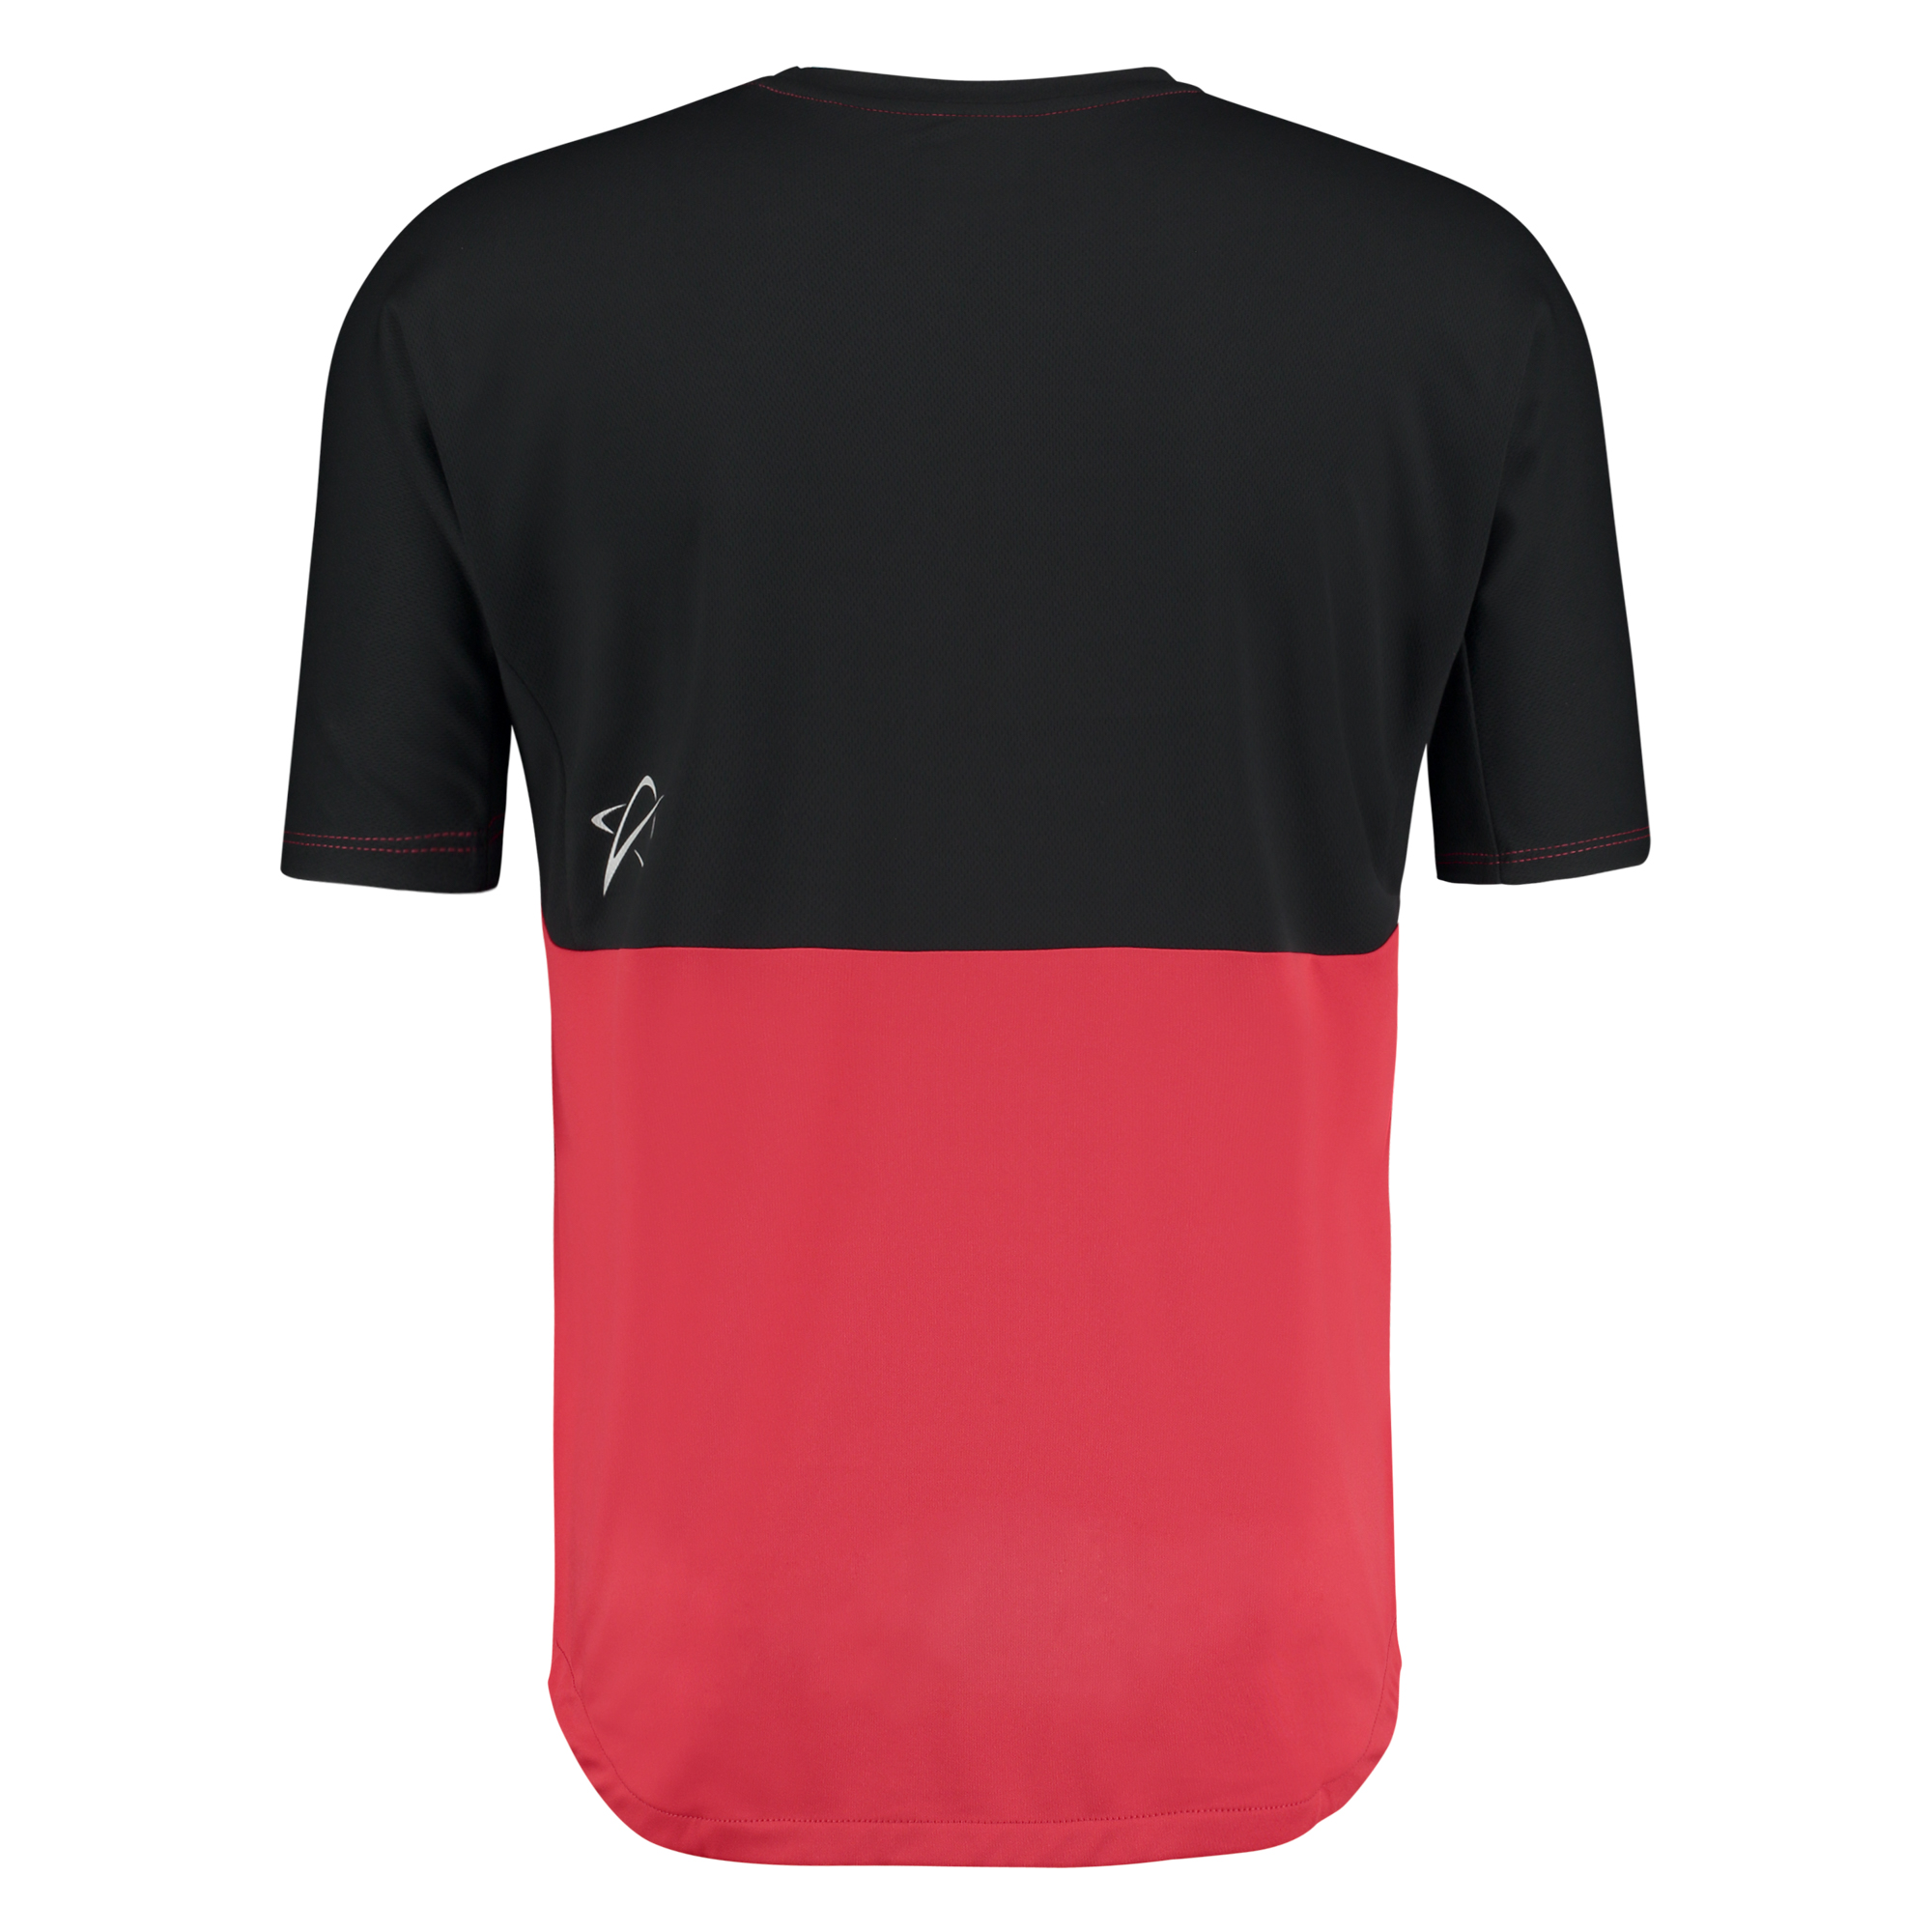 ace top red back.jpg